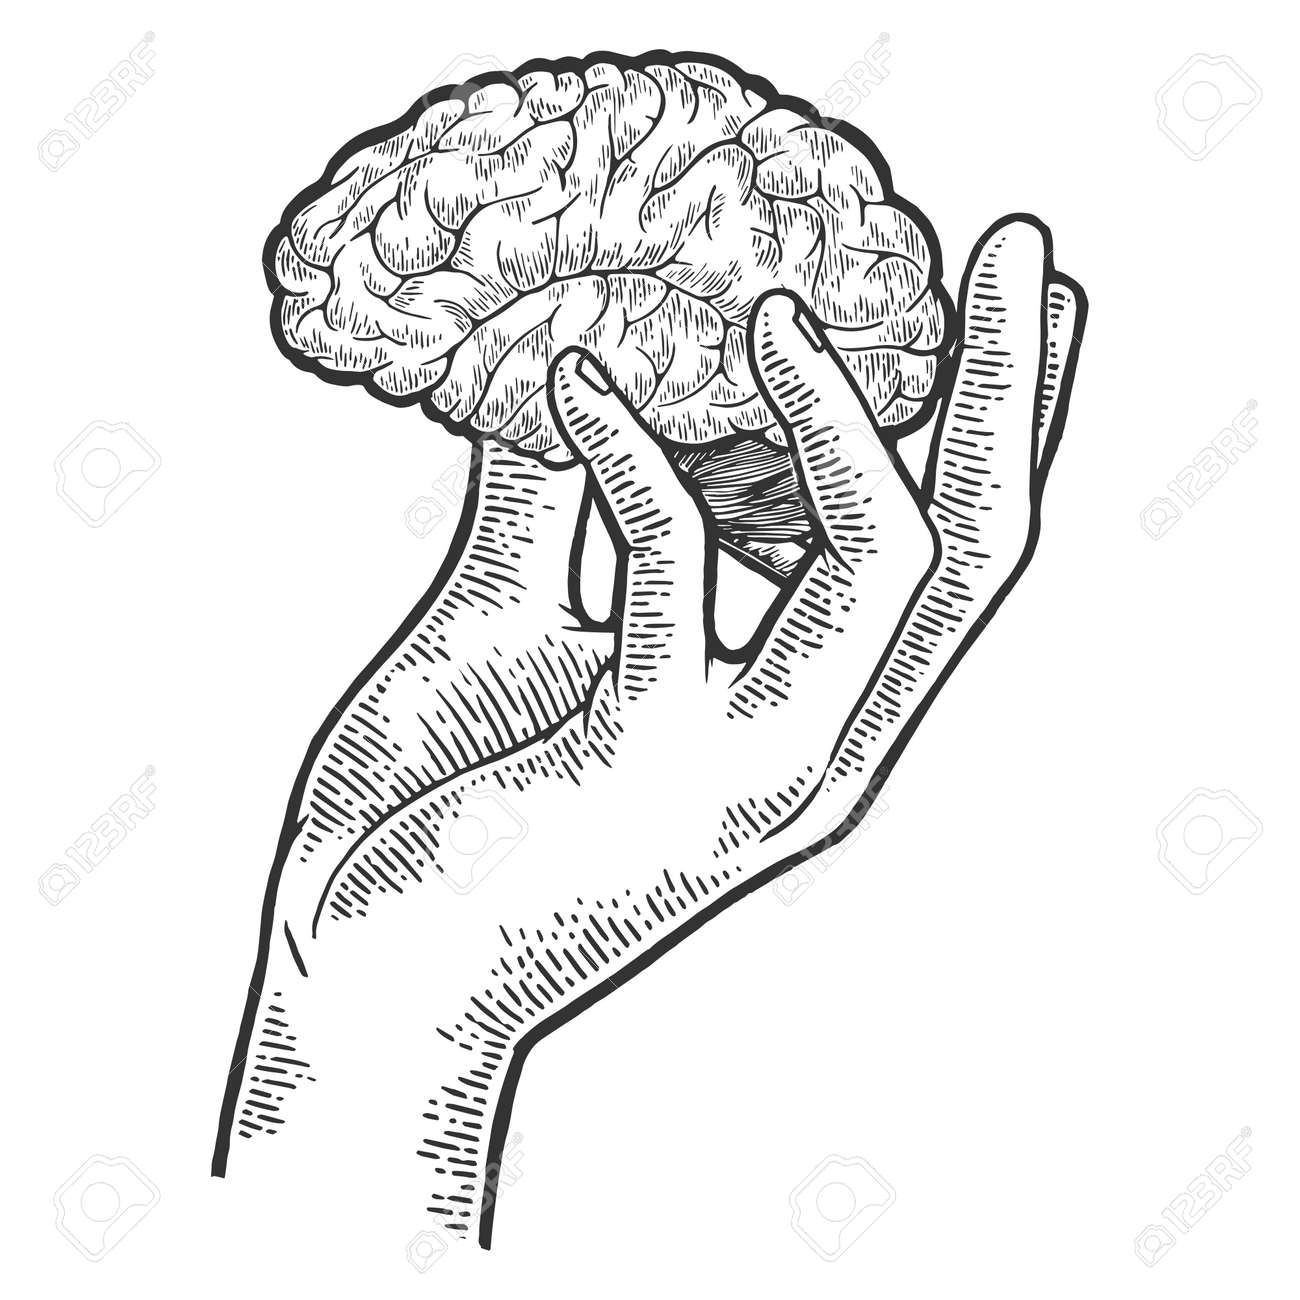 Human brain in hand sketch engraving vector illustration. Scratch board style imitation. Black and white hand drawn image. - 122811961